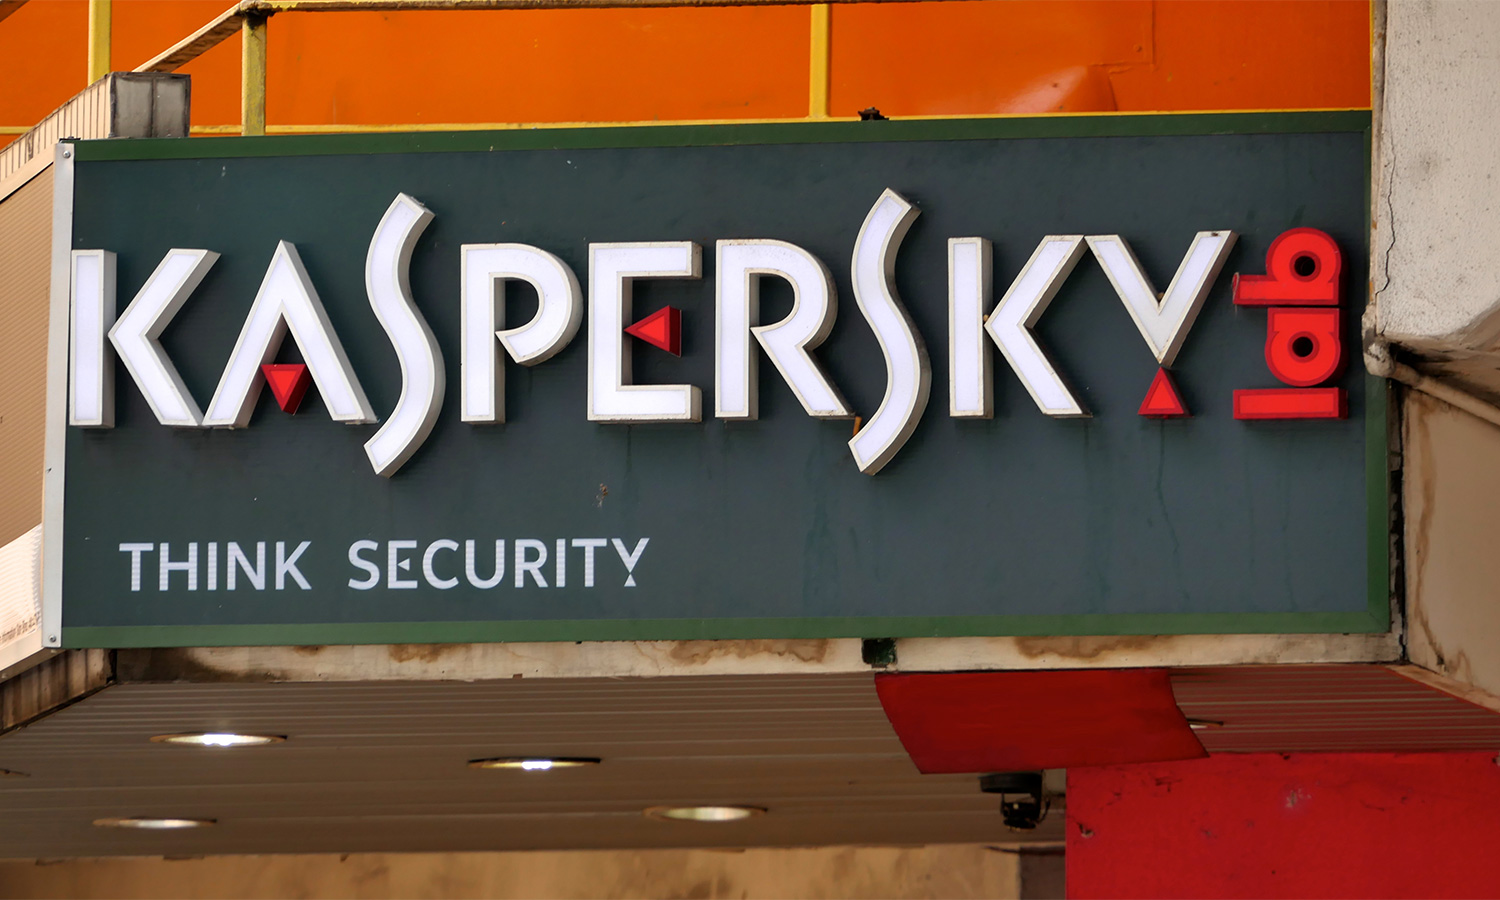 Kaspersky Russian Spying Rumors: Should You Use This